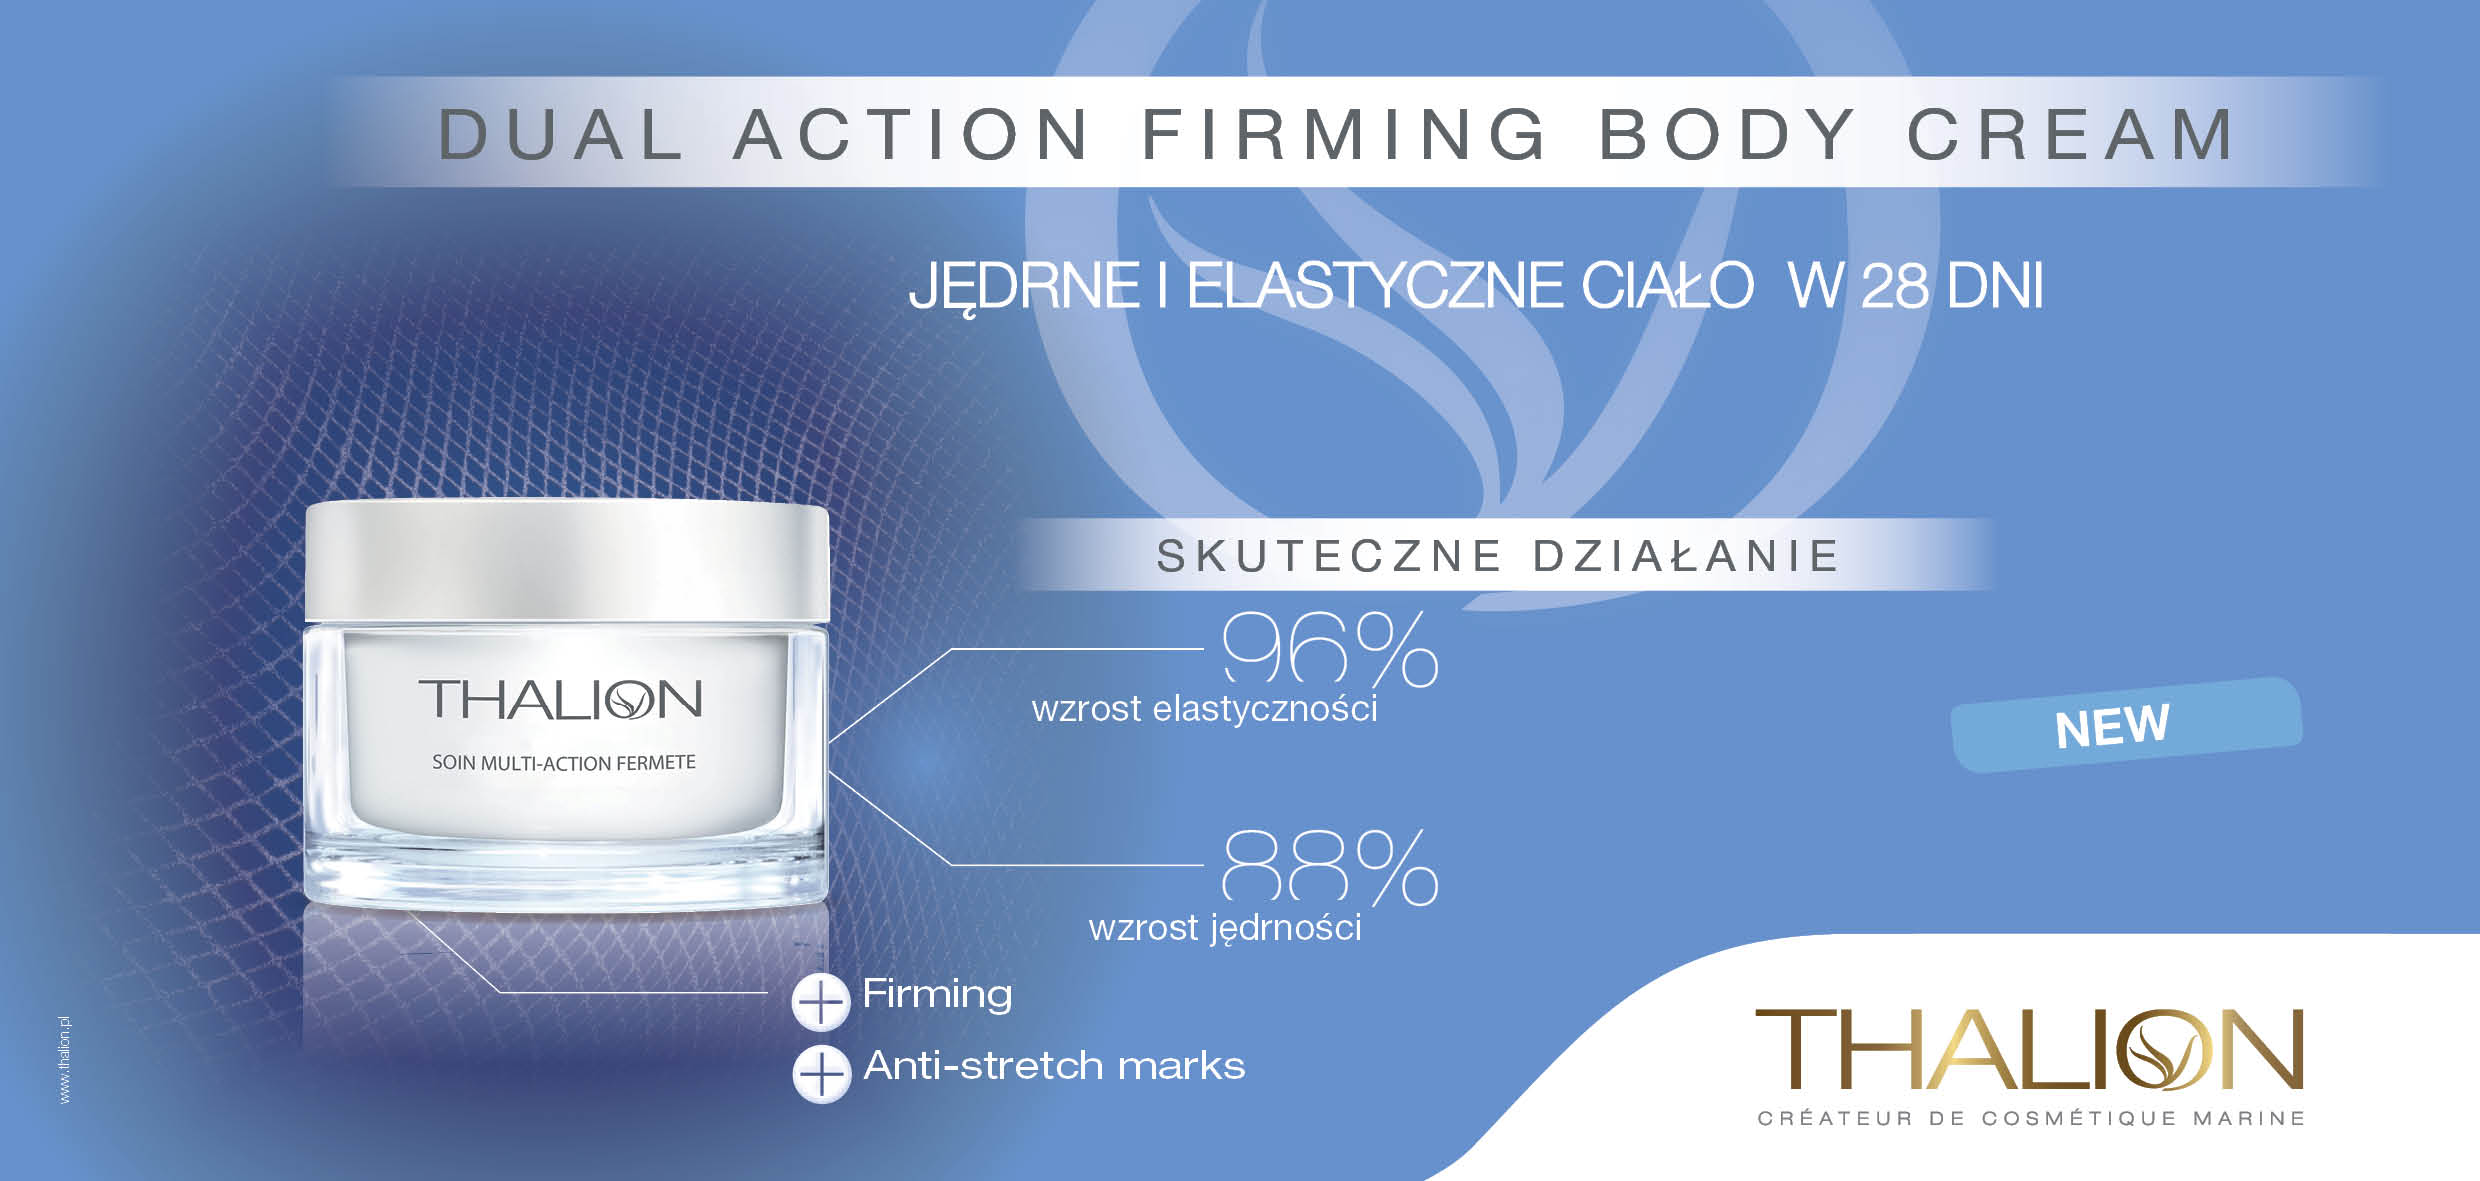 DUAL ACTION FIRMING BODY CREAM